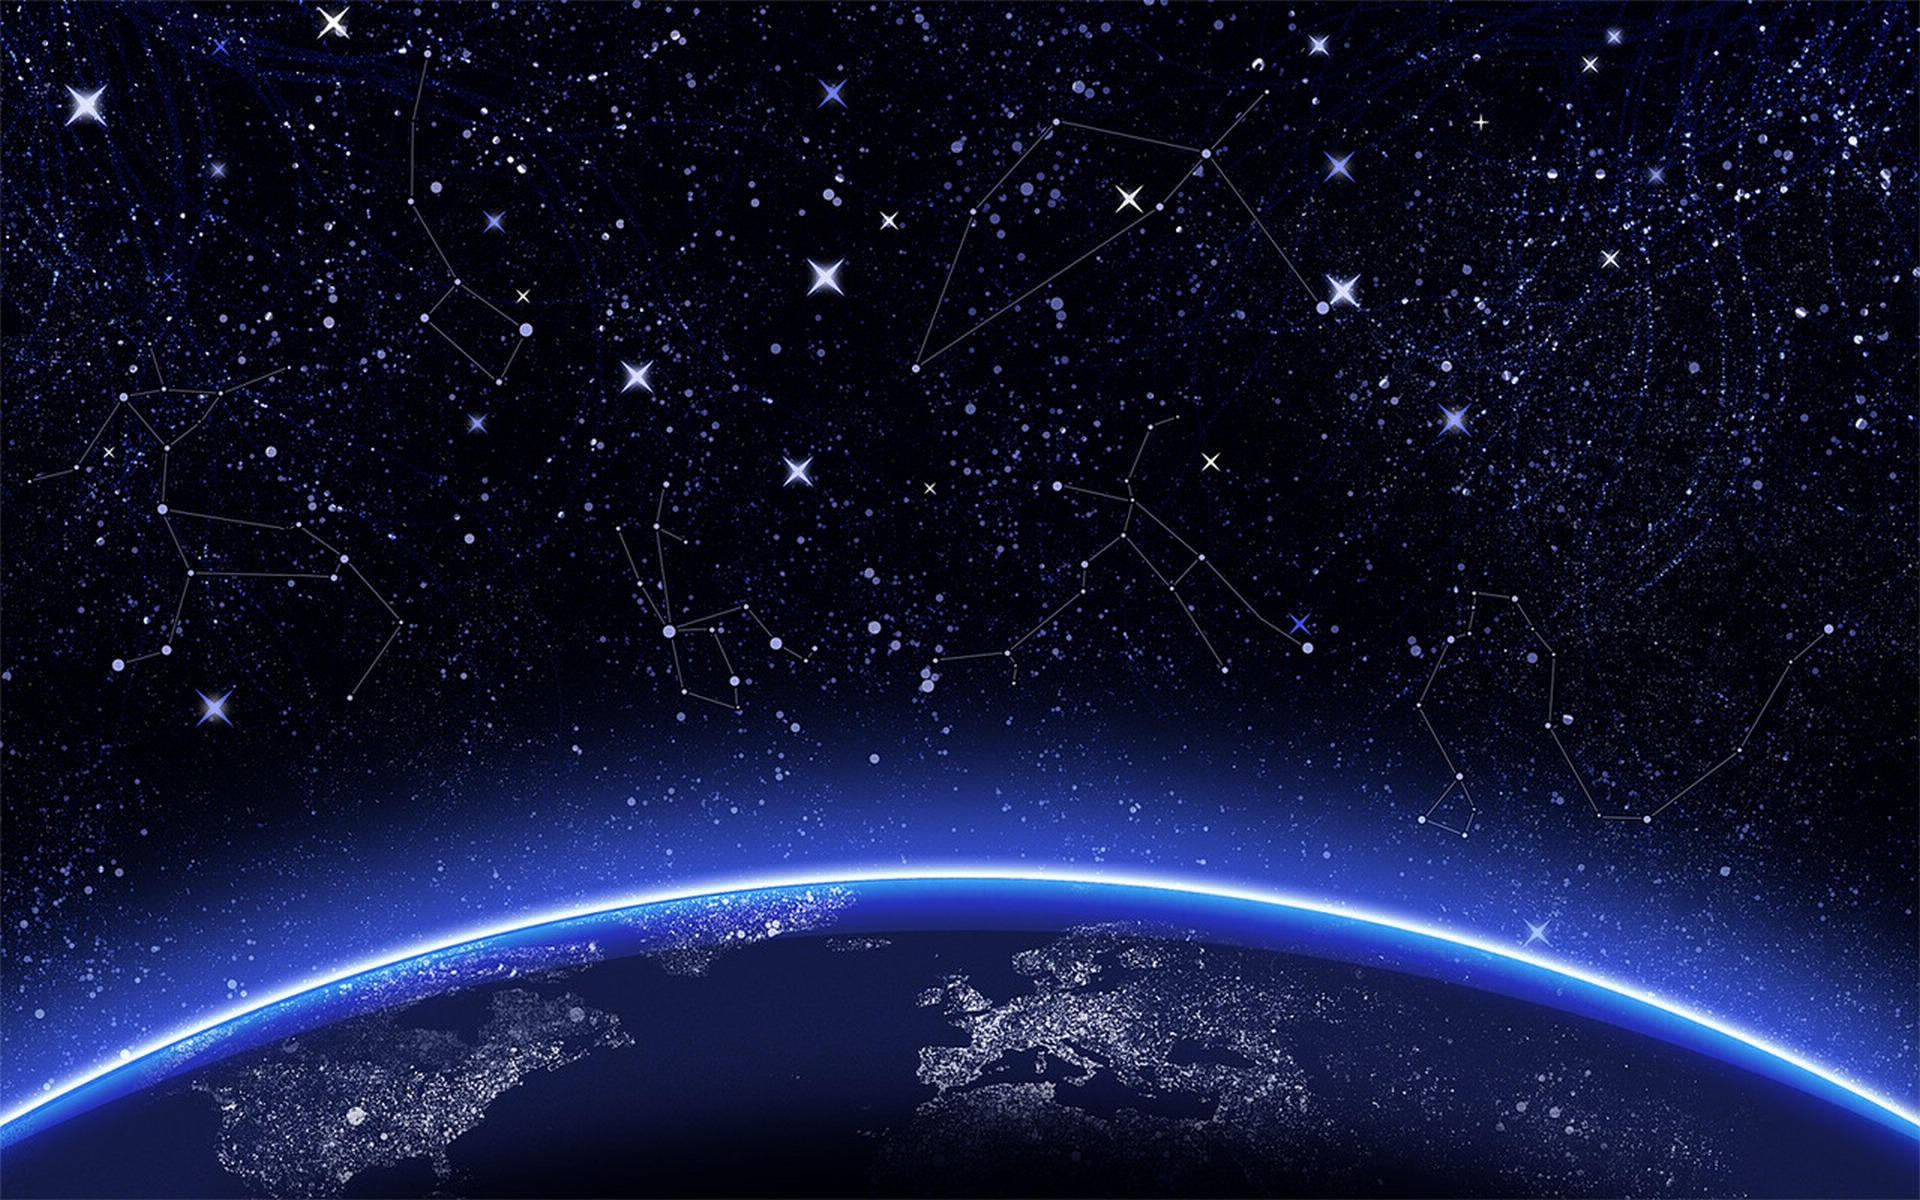 Comments to 33 HD Universe Backgrounds For Desktops Laptops 1920x1200